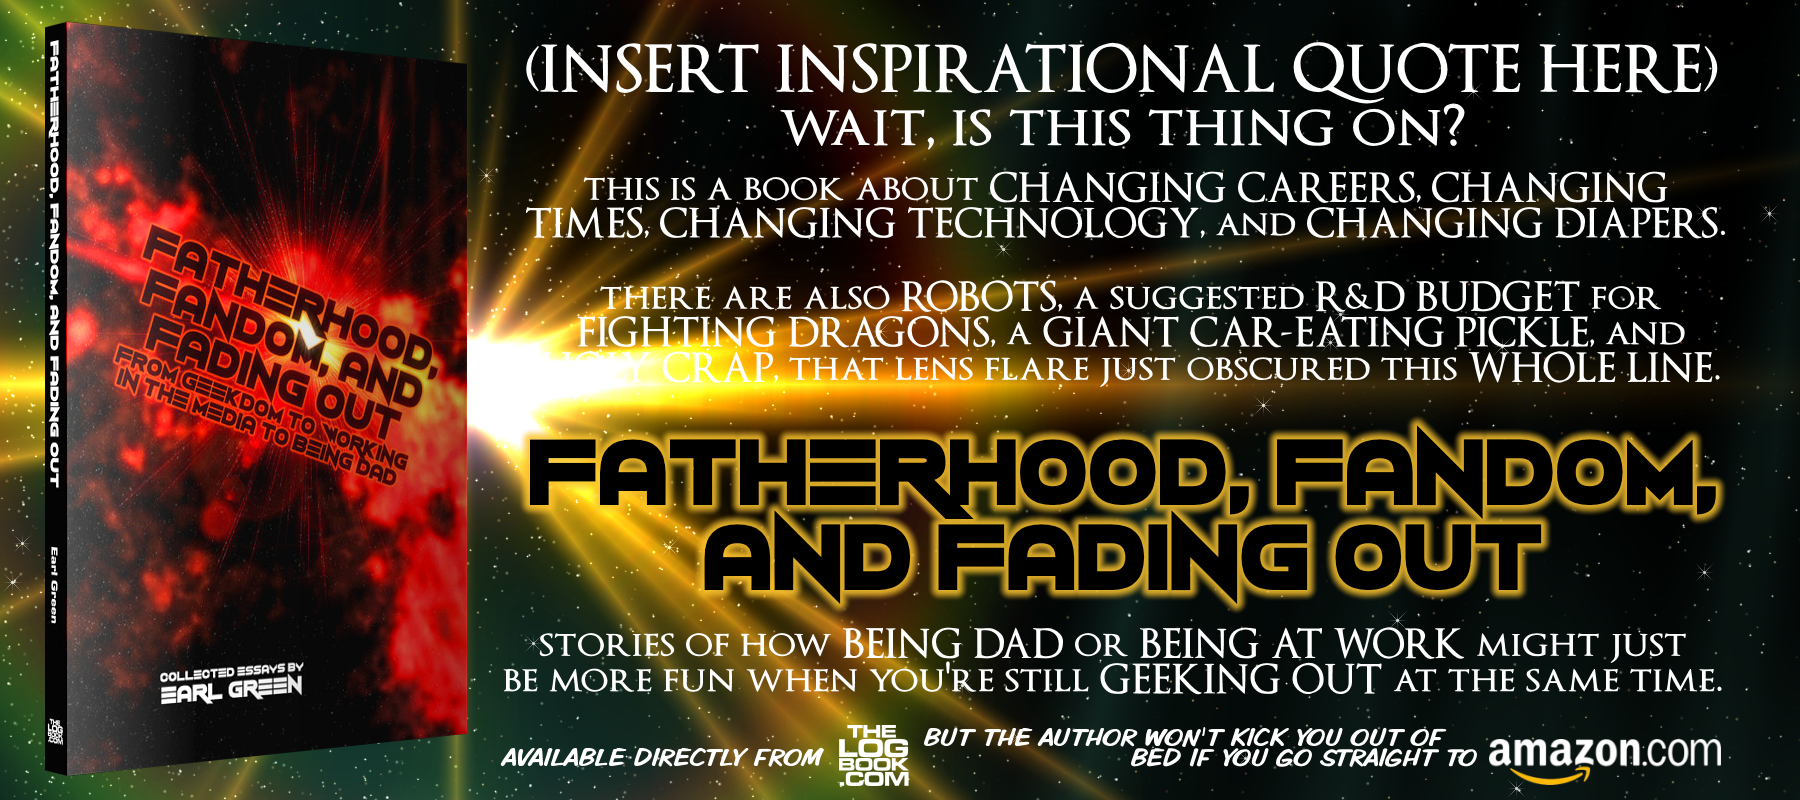 Fatherhood, Fandom and Fading Out